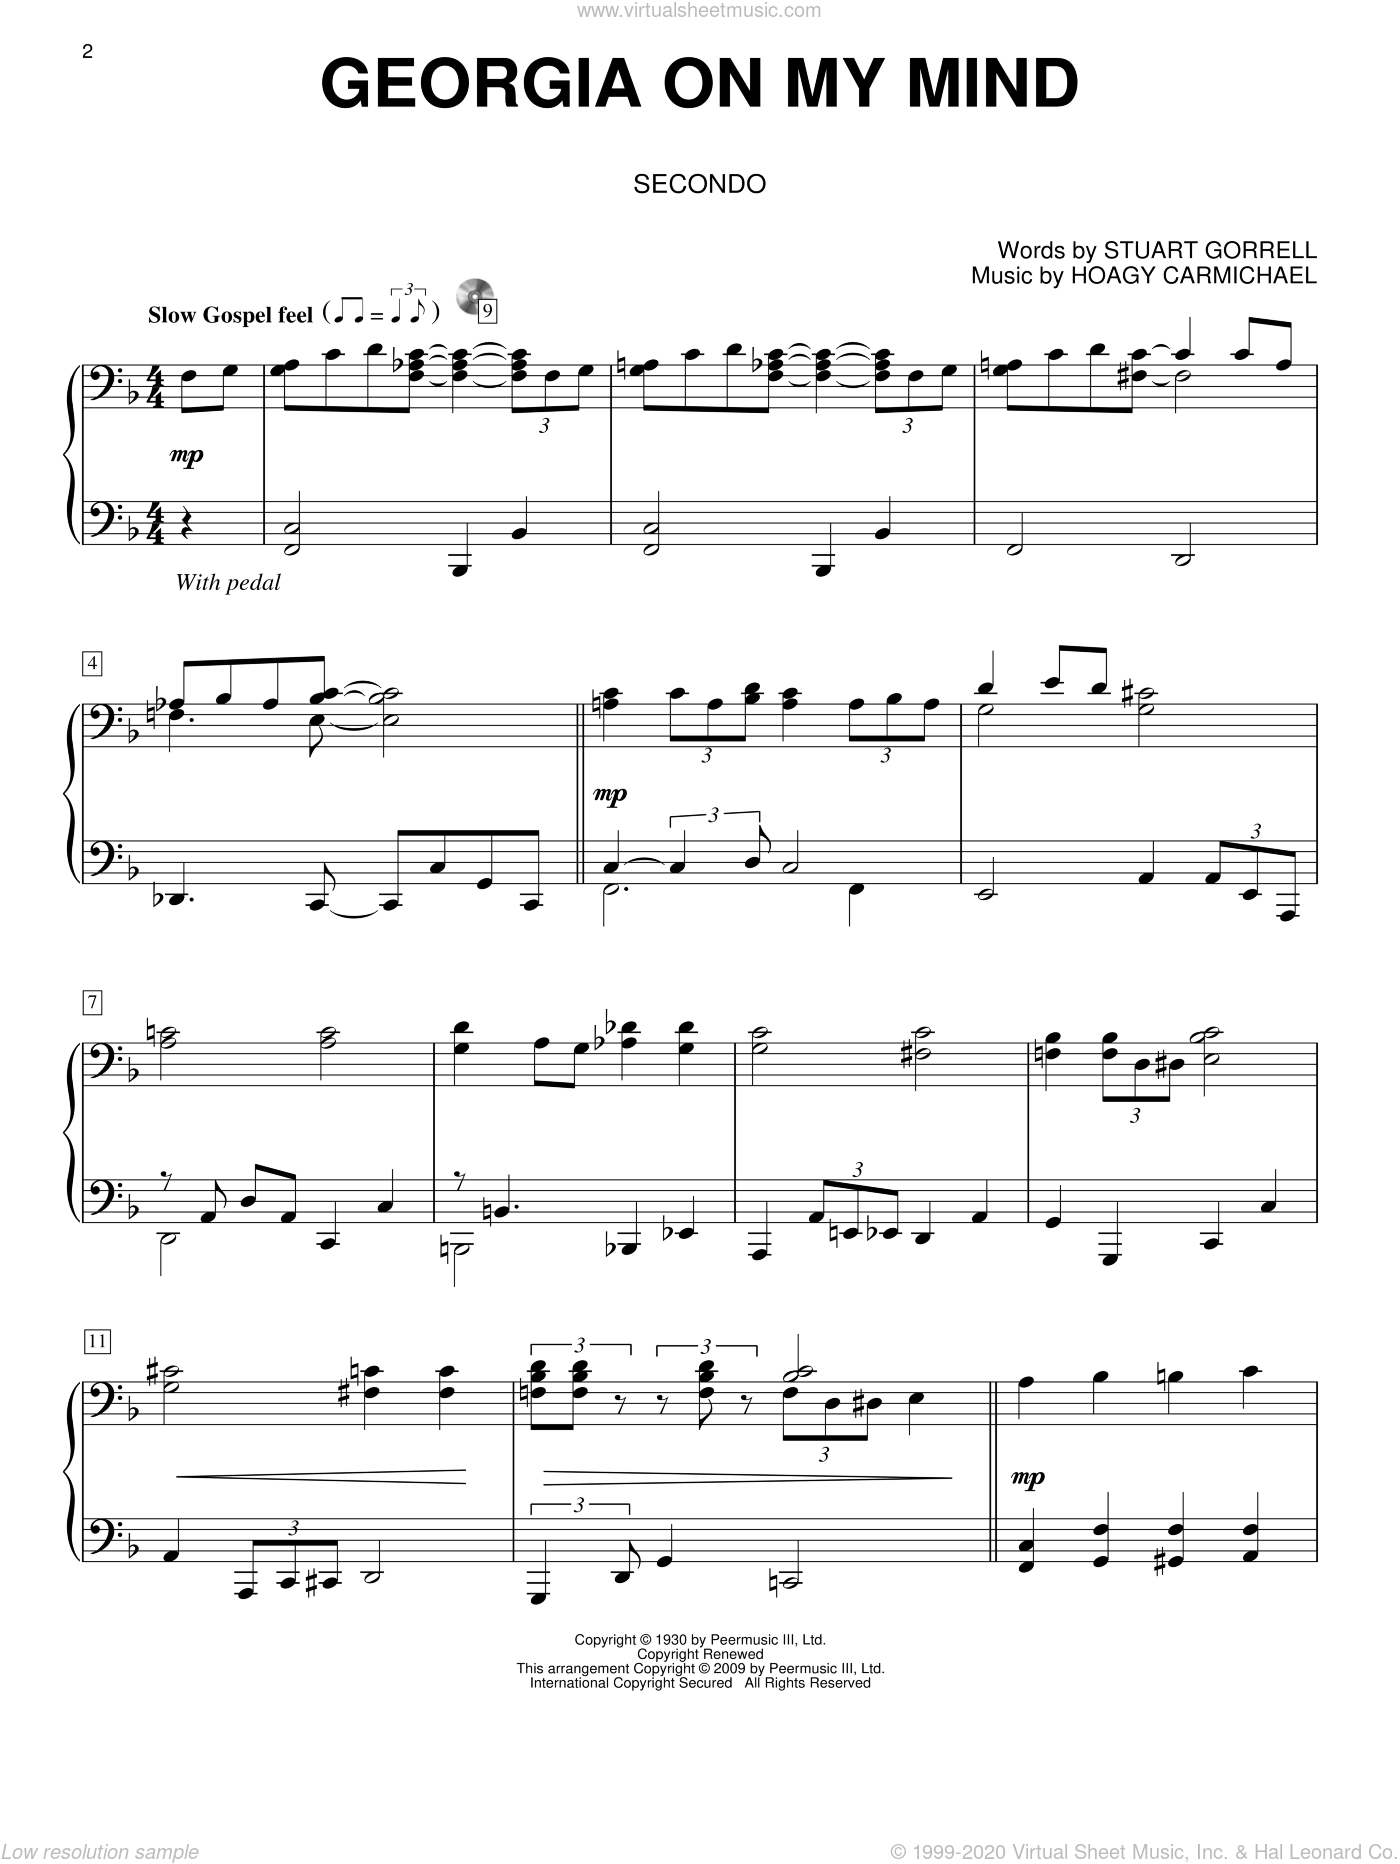 Georgia On My Mind sheet music for piano four hands (duets) by Stuart Gorrell